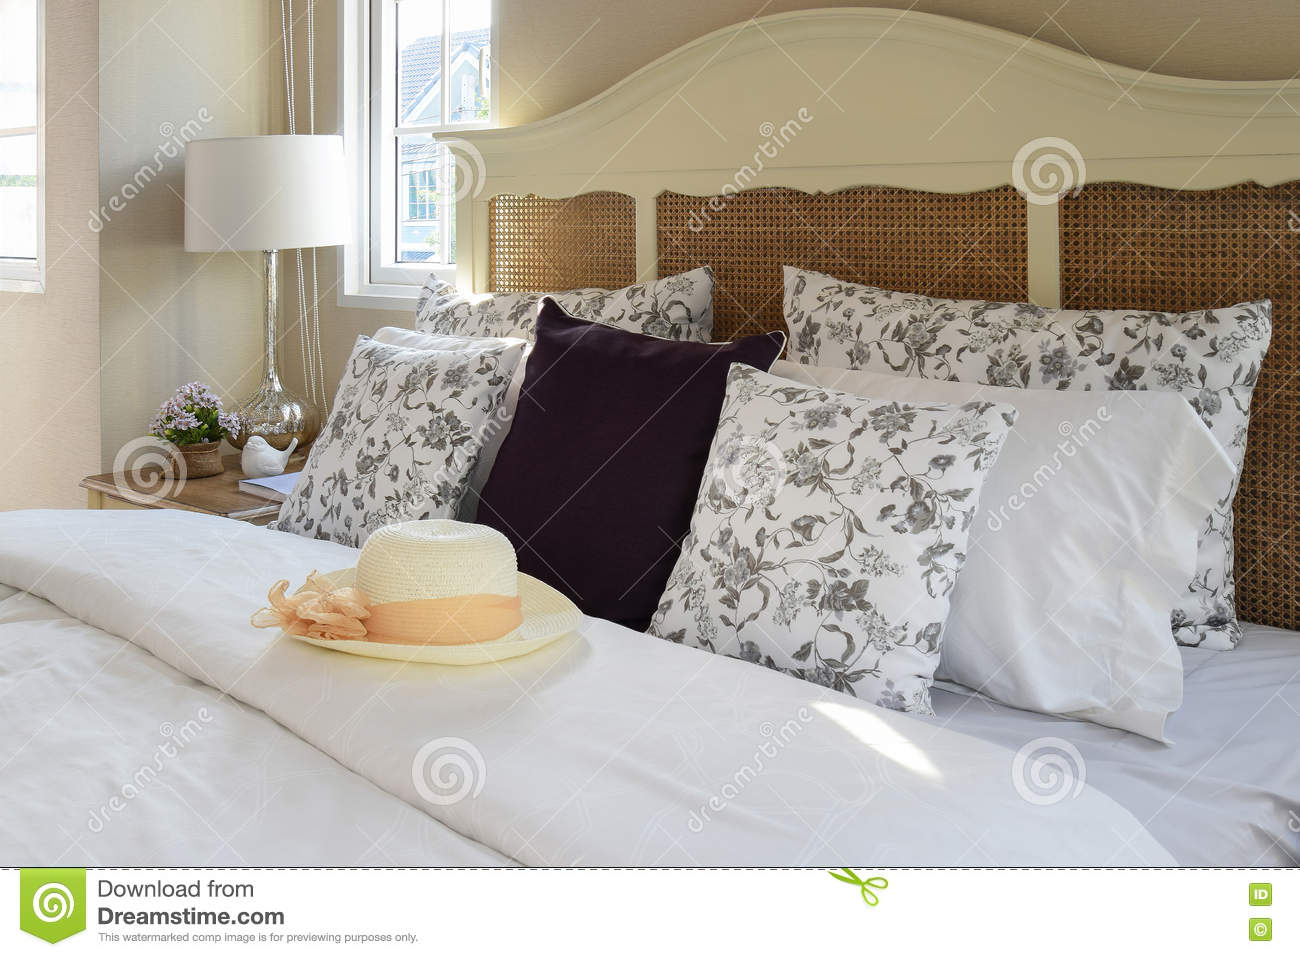 Vintage Bedroom Interior With Flower Pillows And Decorative Table ...